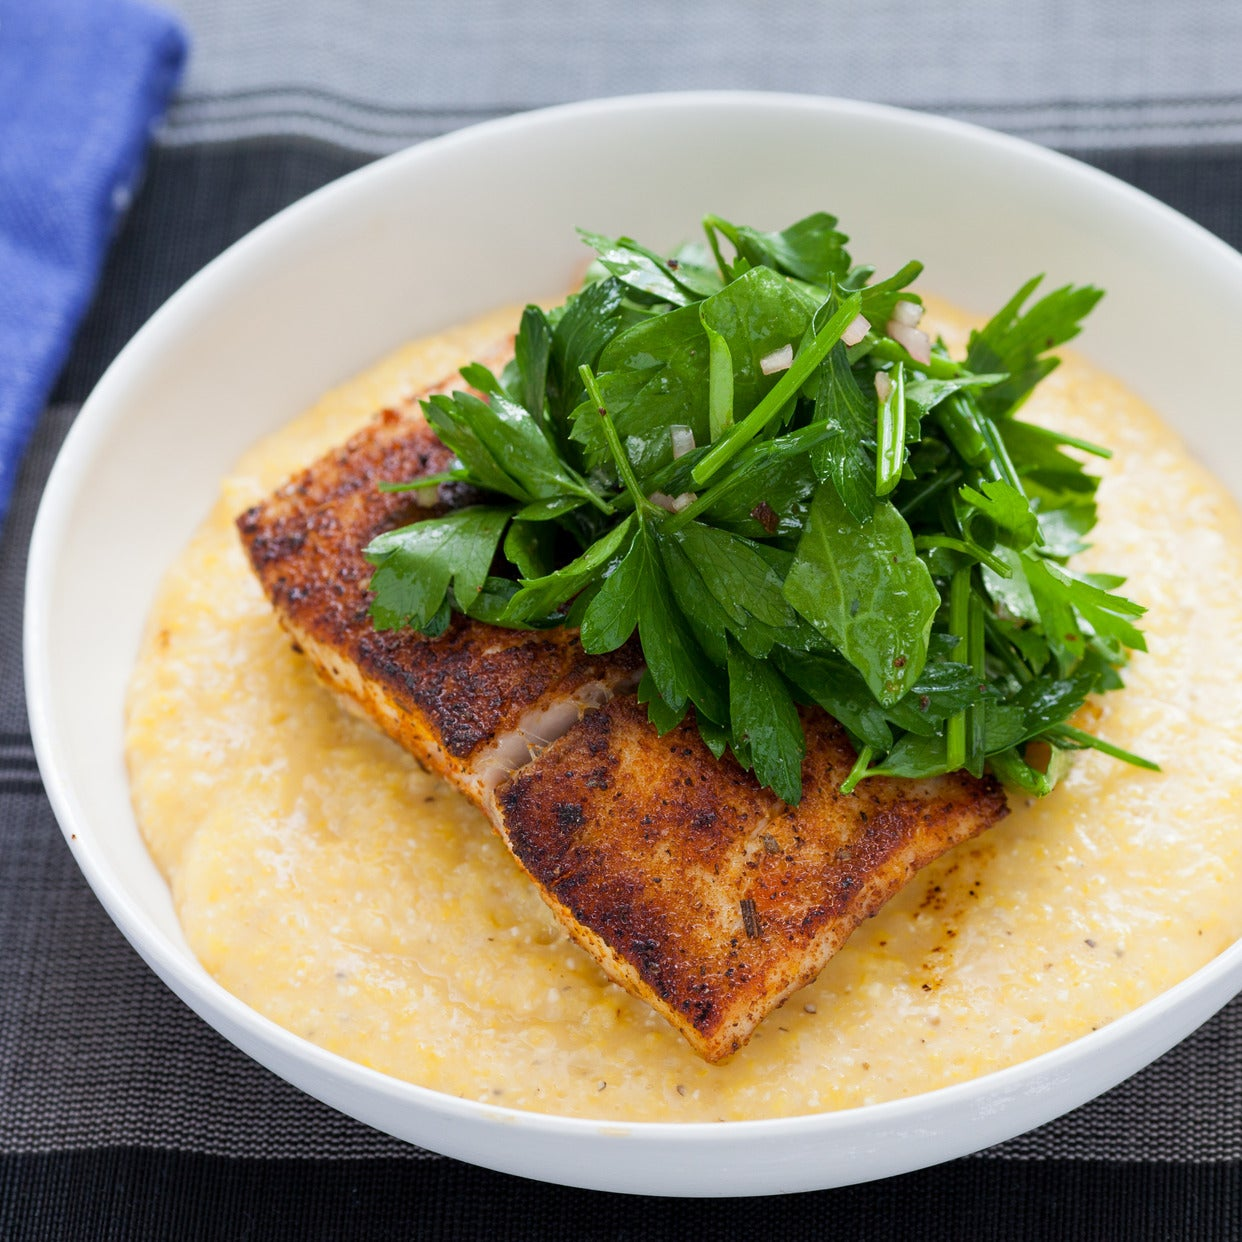 Blackened Drum over Cheddar Cheese Grits with Sorrel, Parsley & Chive Salad